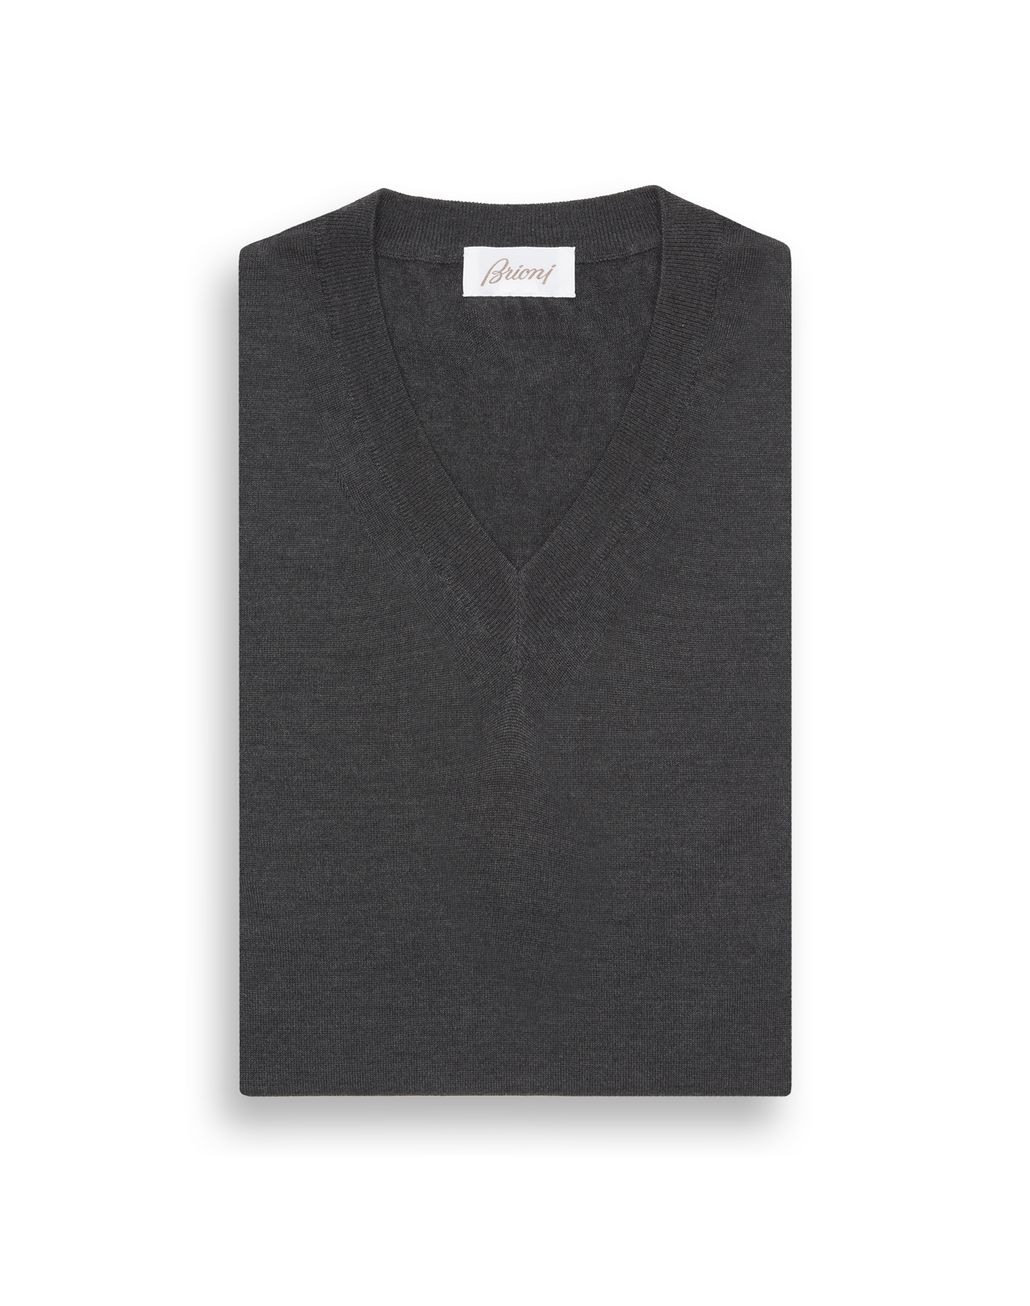 BRIONI 'Essential' Gray V-Neck Sweater Knitwear [*** pickupInStoreShippingNotGuaranteed_info ***] e